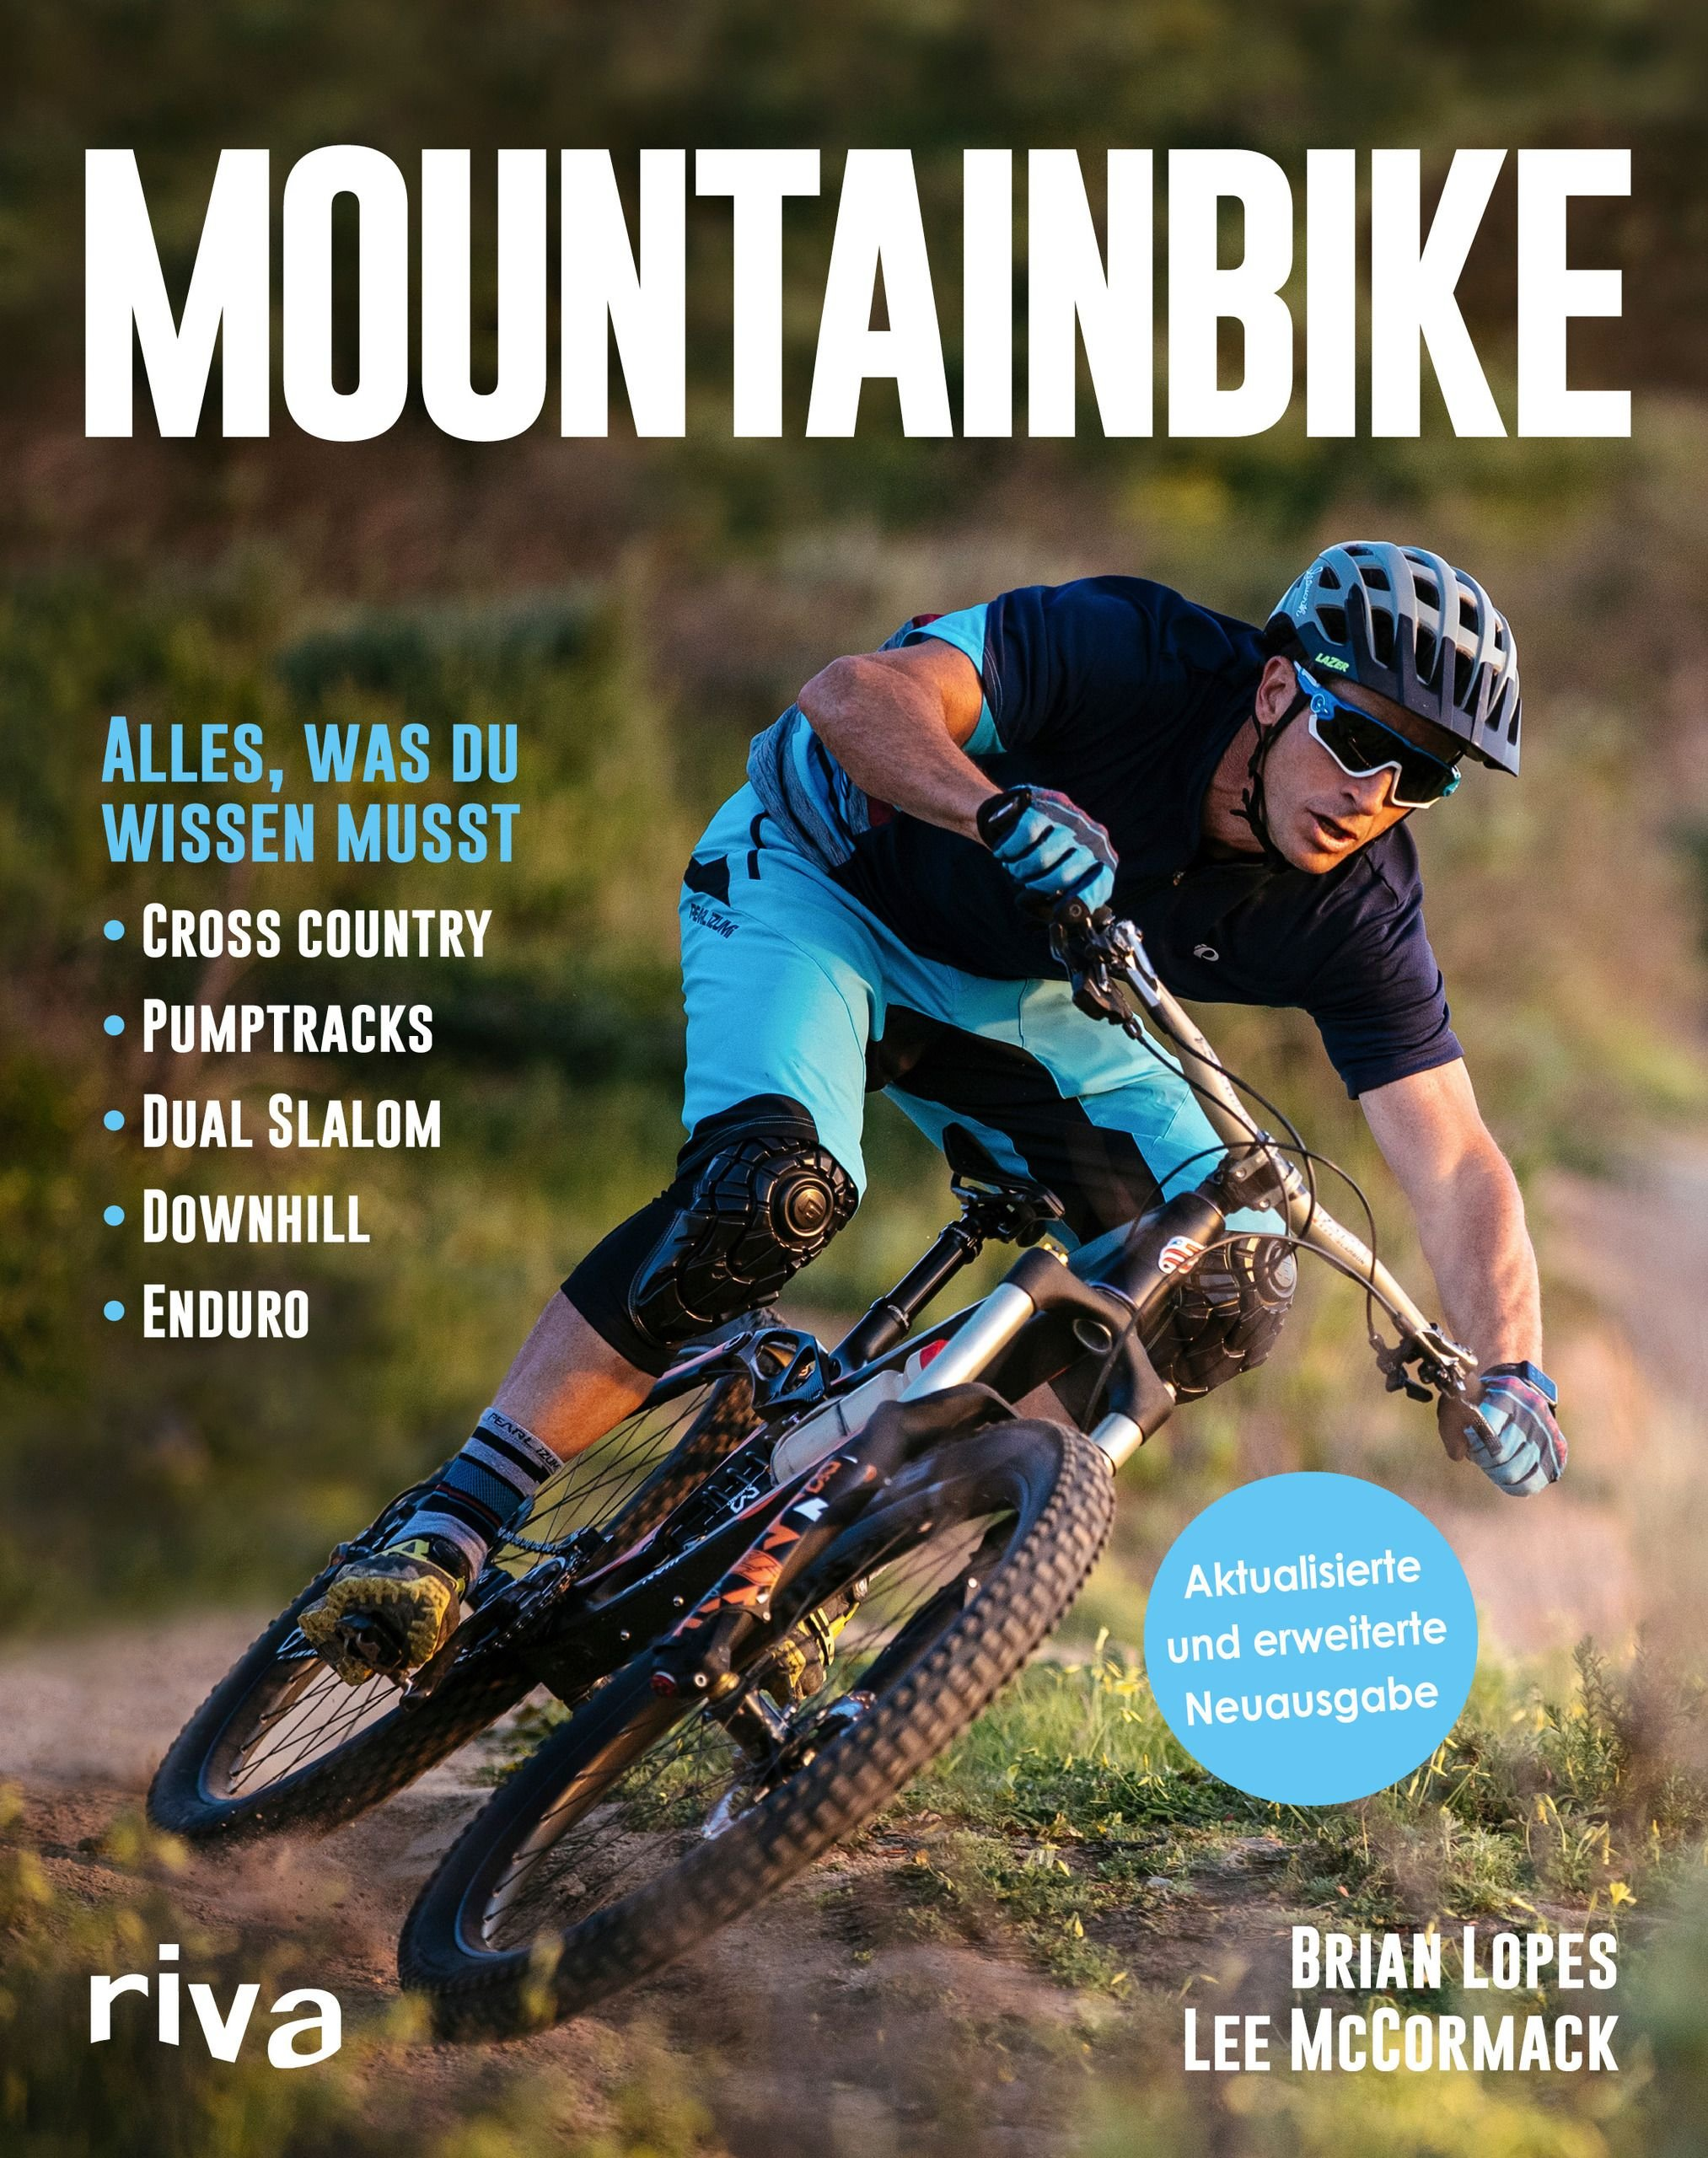 Mountainbike: Alles, was du wissen musst - Cross-Country - Pumptracks - Dual Slalom - Downhill - Enduro Taschenbuch – 12. März 2018 Brian Lopes Lee McCormack Riva 3742303201